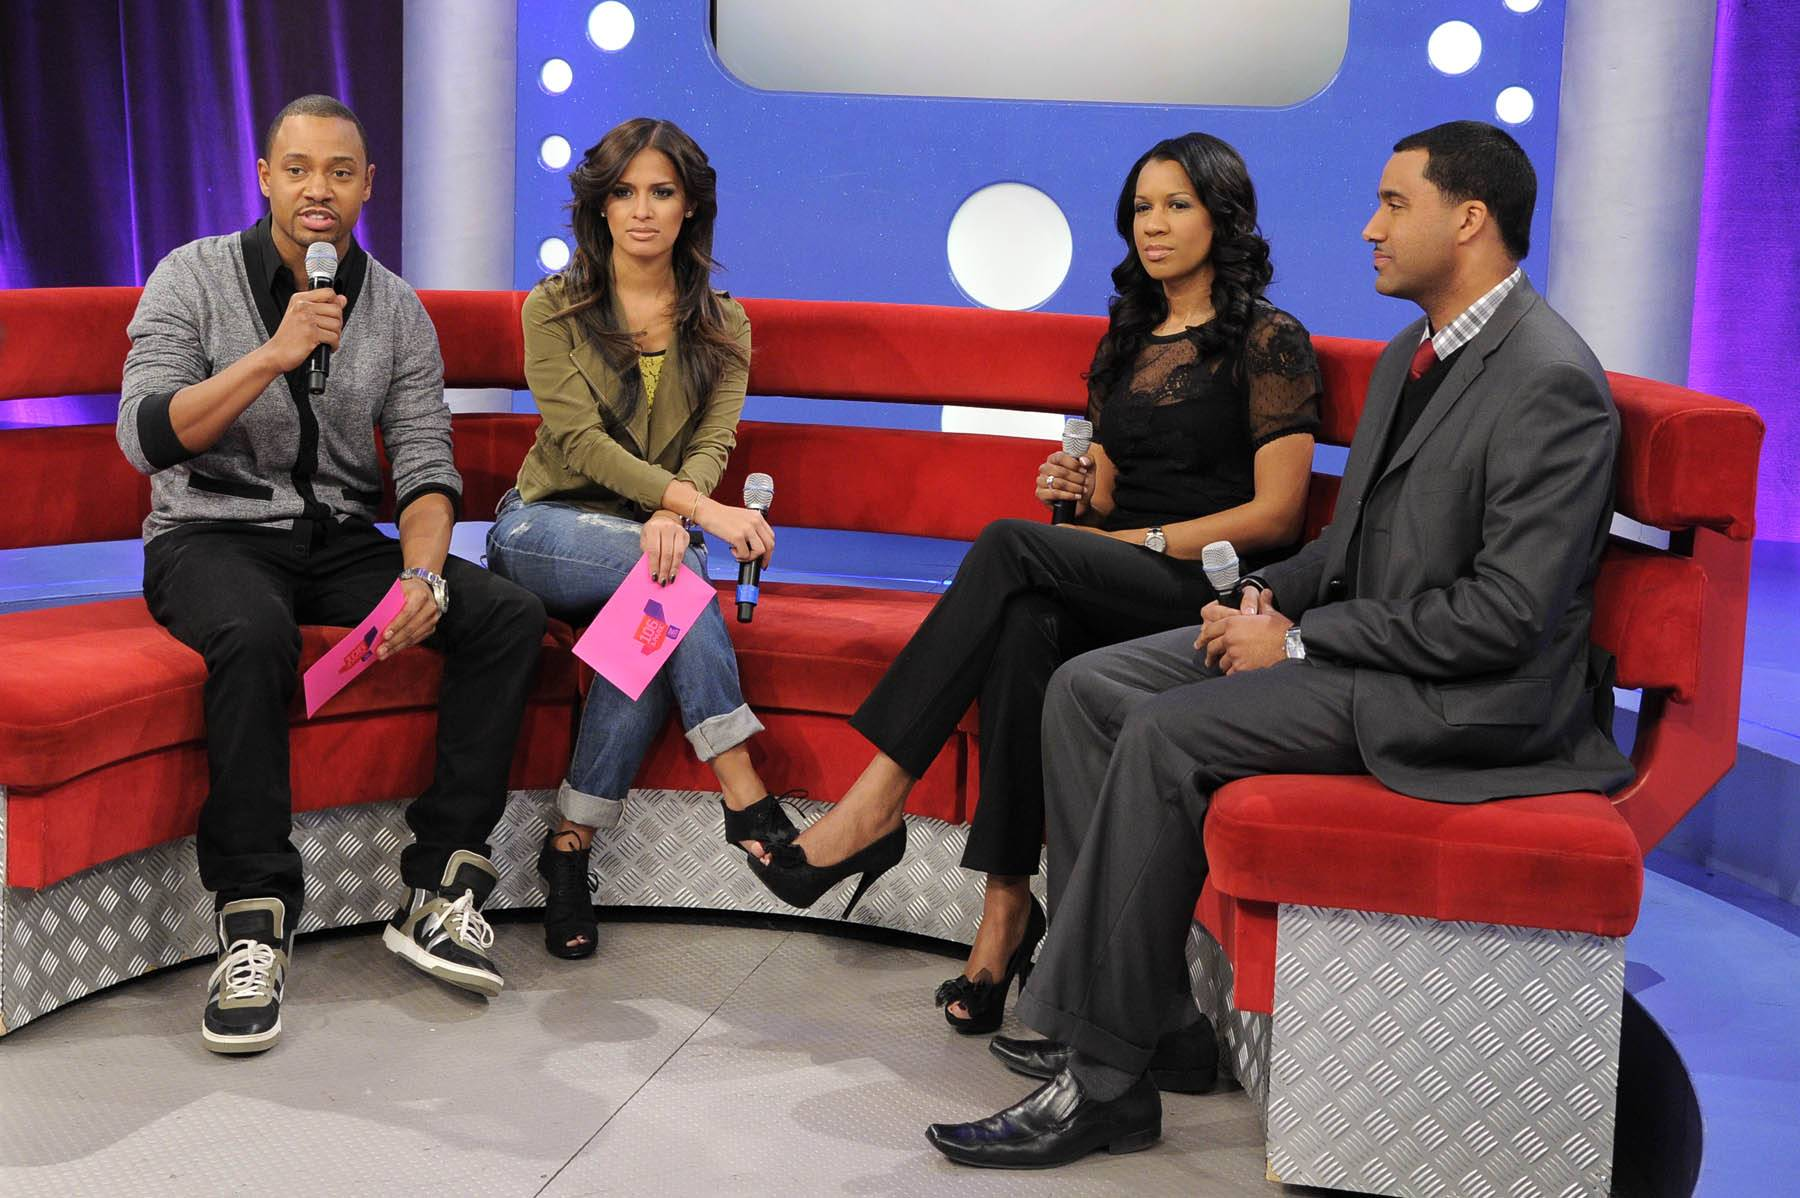 Let Us Learn - Terrence J and Rocsi Diaz talk with Dr. Michelle and Dr. Alduan Tarrt about single parenting at 106 & Park, January 30, 2012. (Photo: John Ricard / BET)